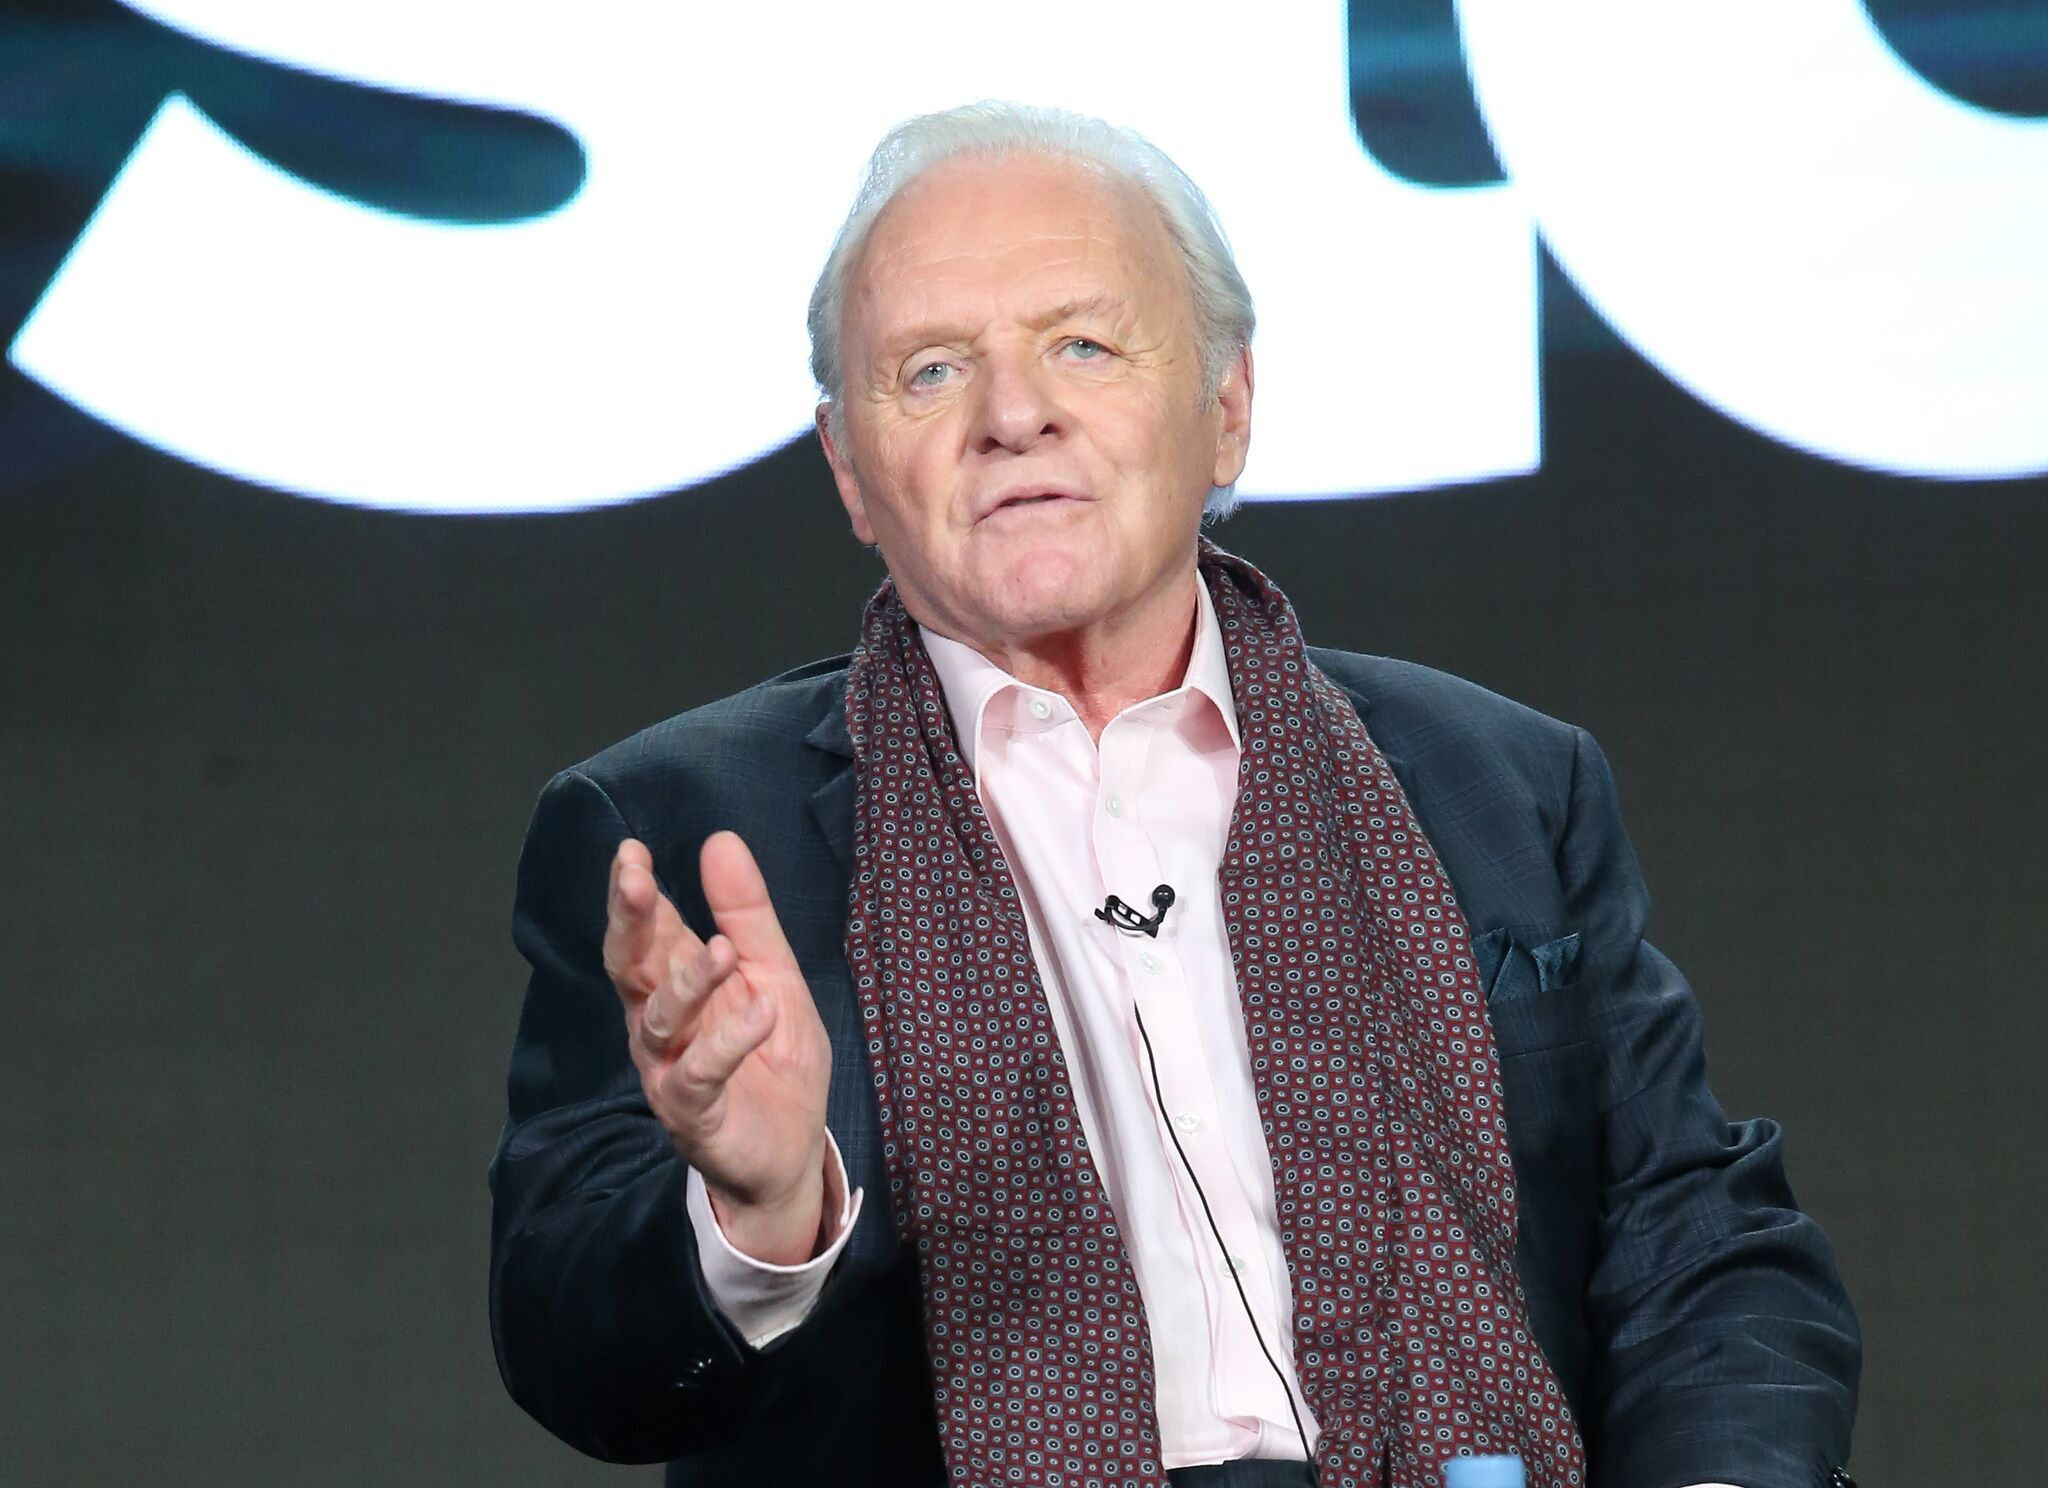 Anthony Hopkins during The Dresser panel as part of the Starz portion of This is Cable Television Critics Association Winter Tour on January 8, 2016 | Photo: Getty Images